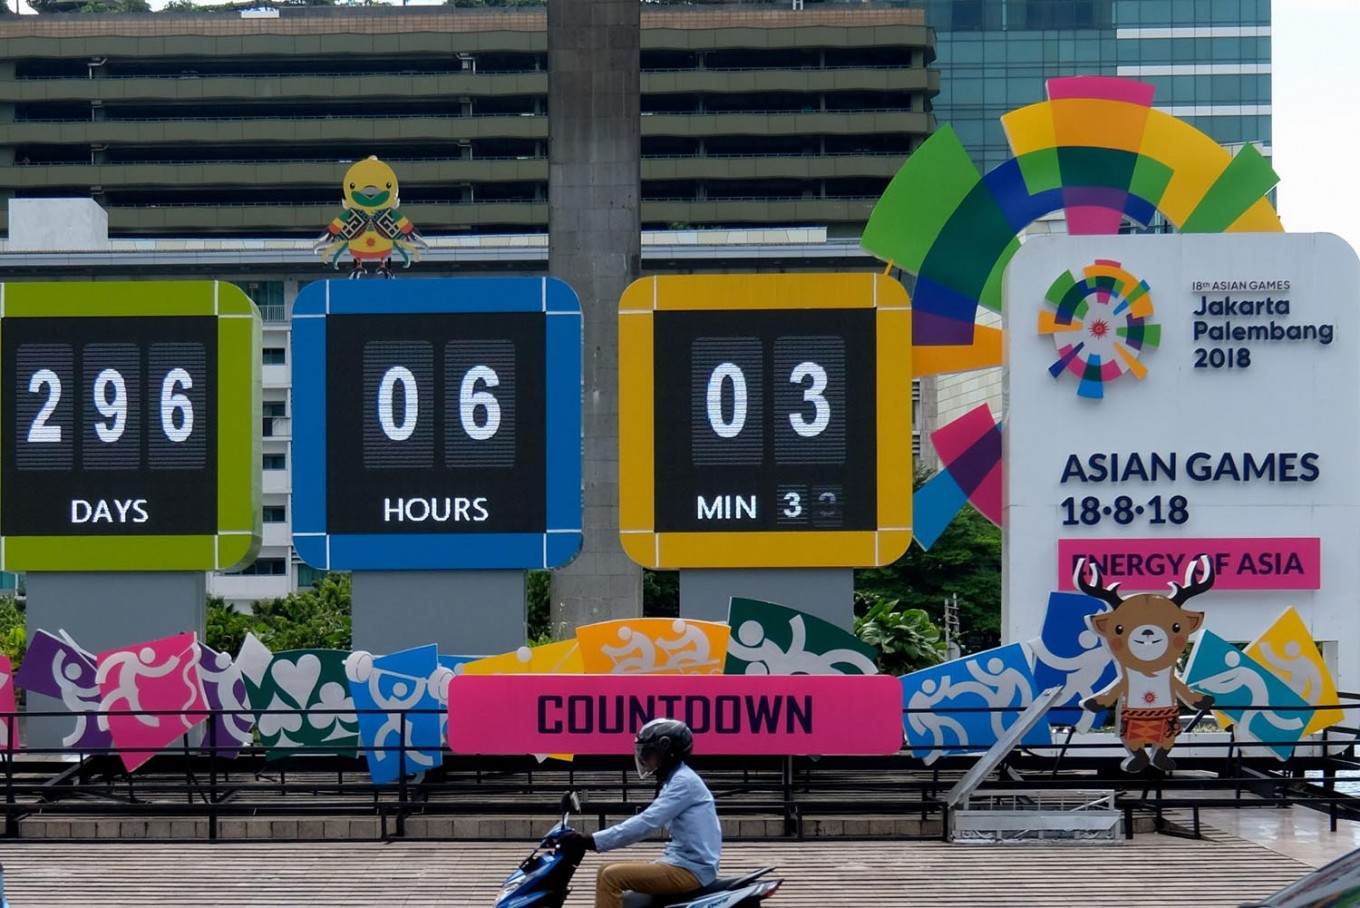 Tangerang 'arms' police with English ahead of Asian Games